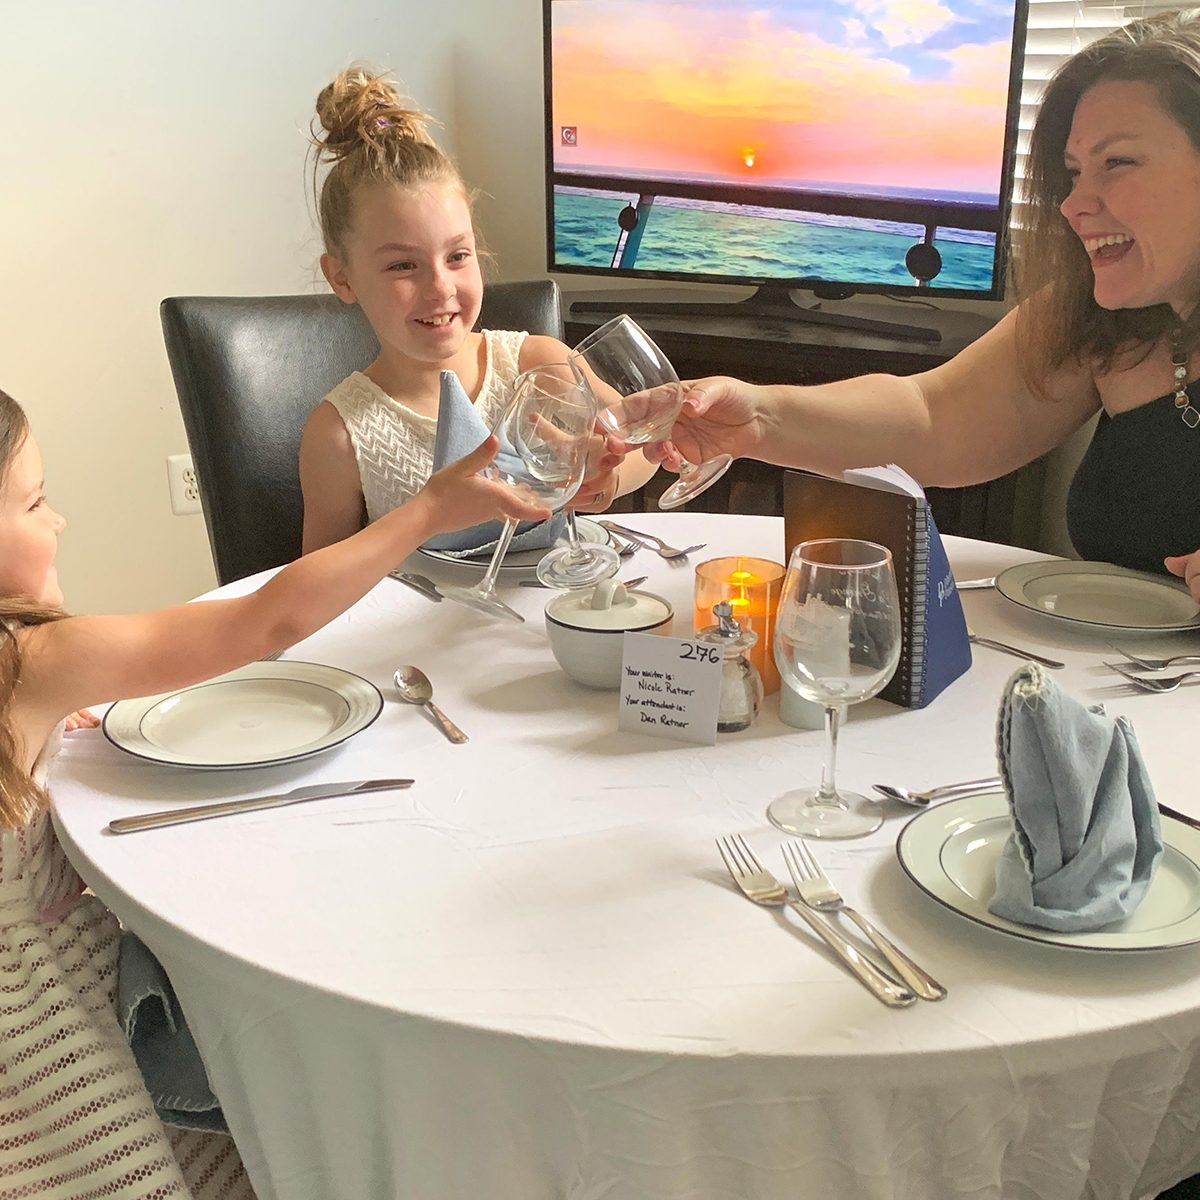 Mother and two kids having a fancy dinner at home